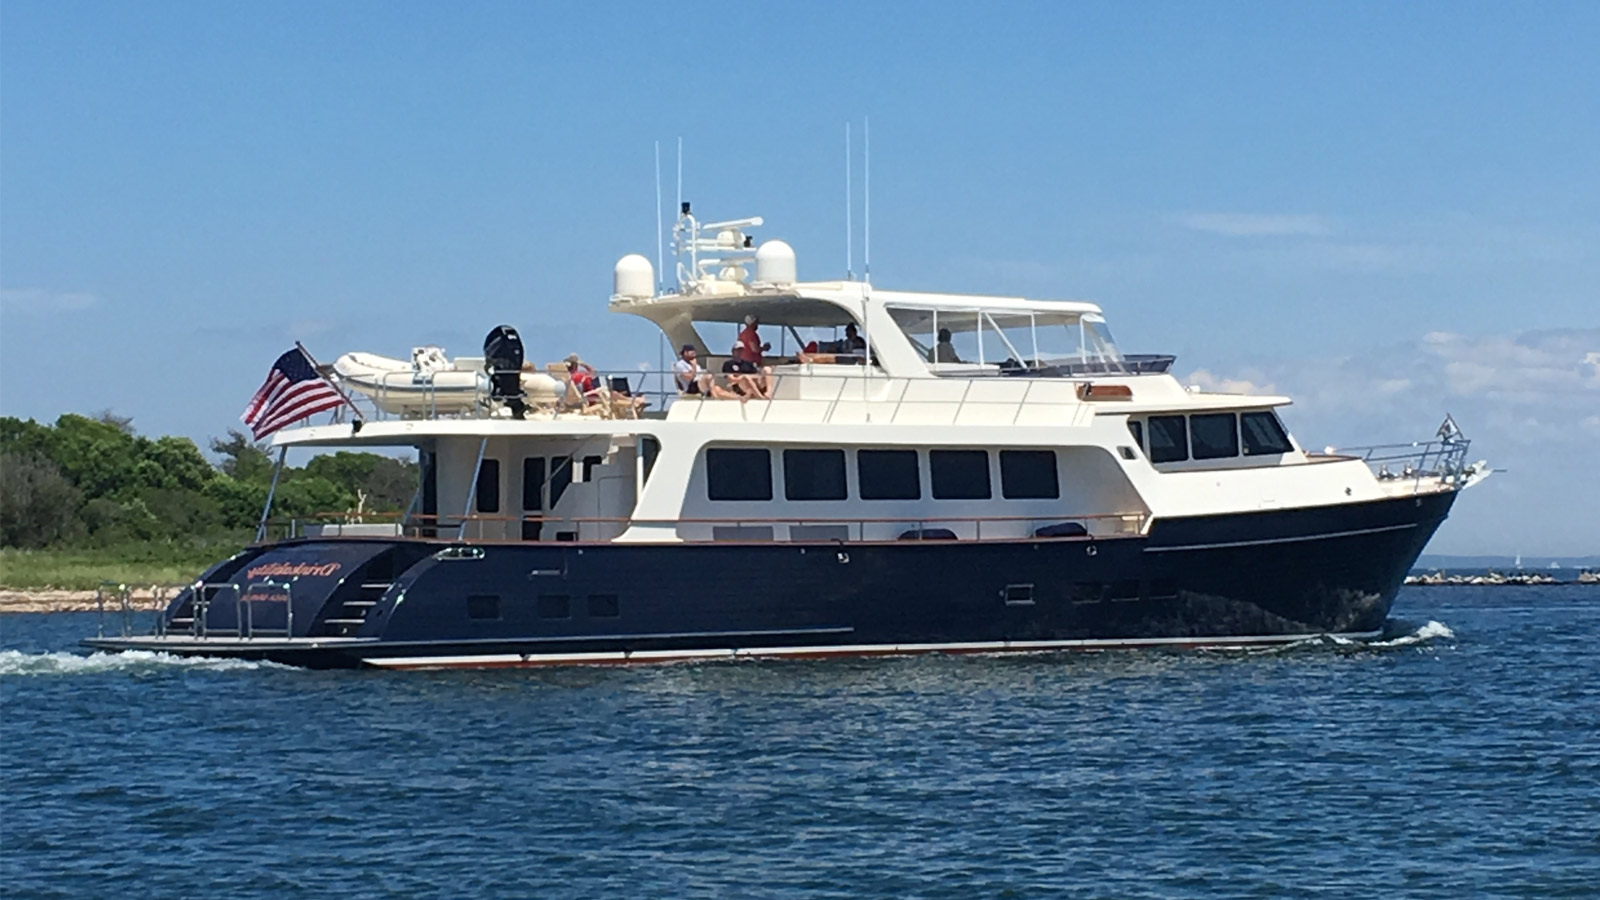 Drinkability Marlow 88e yacht profile for sale IYC